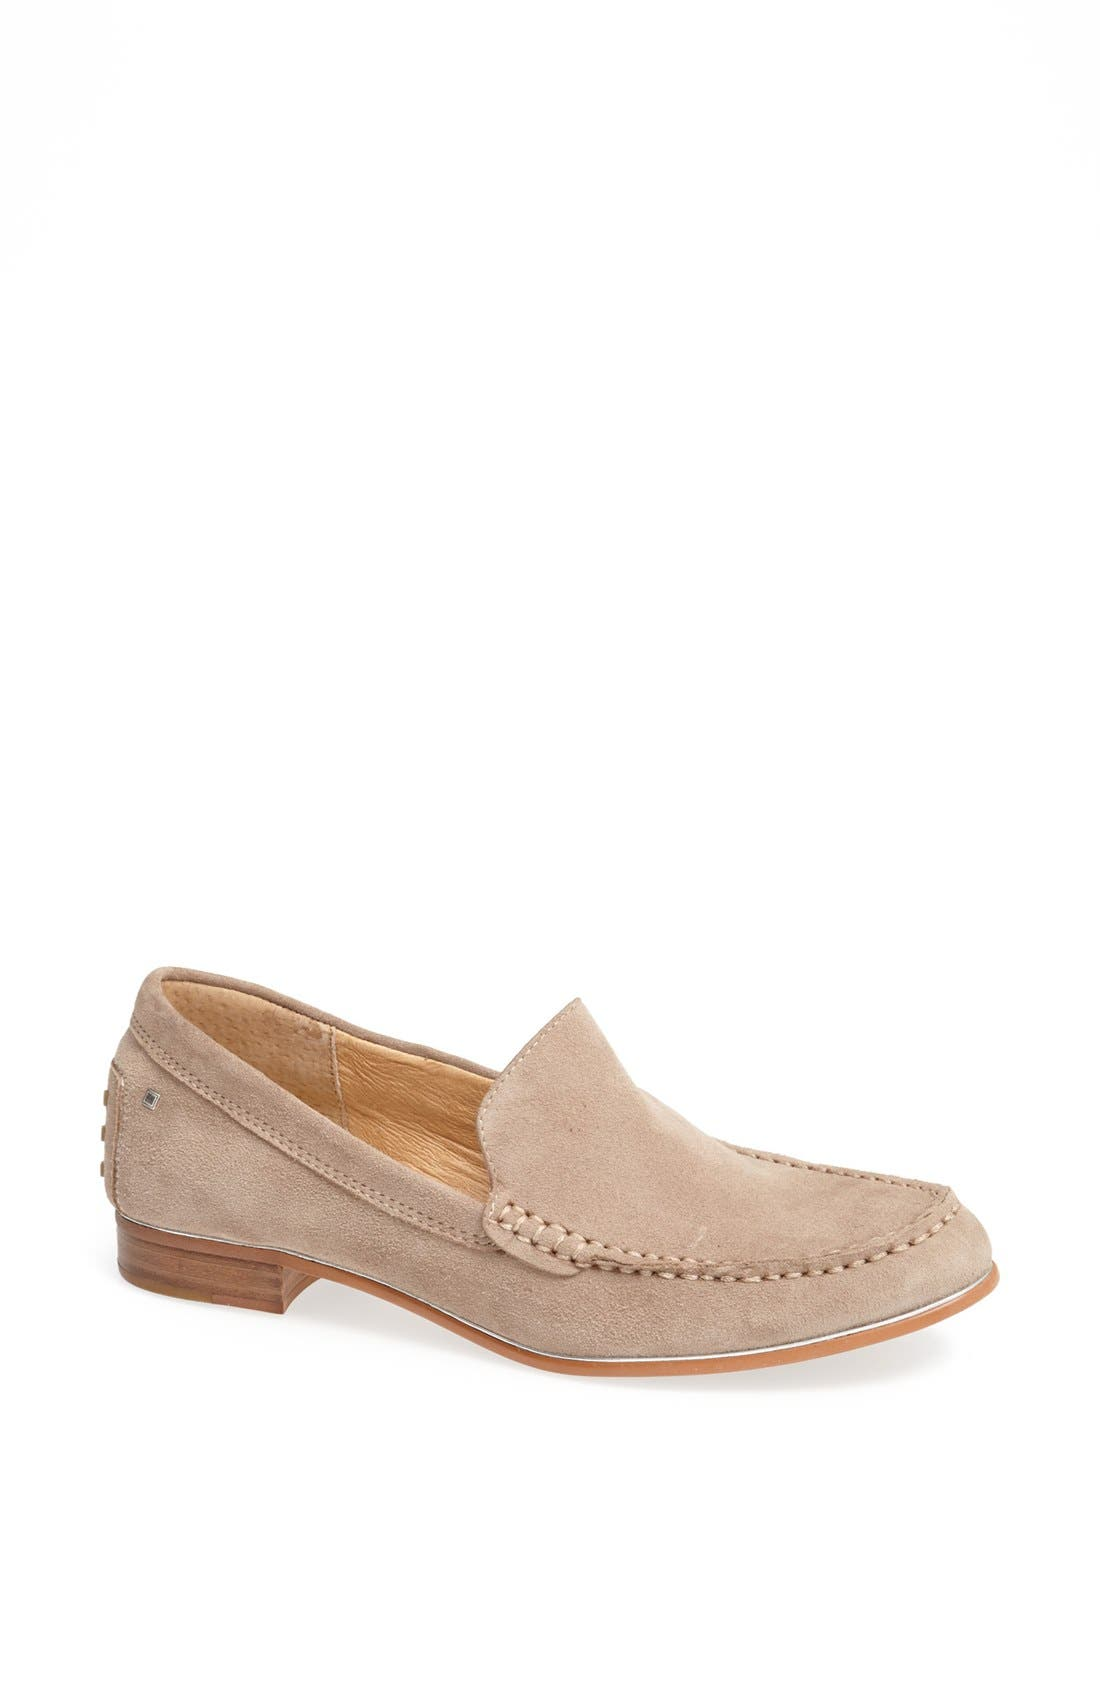 Alternate Image 1 Selected - Dolce Vita 'Venka' Leather Flat